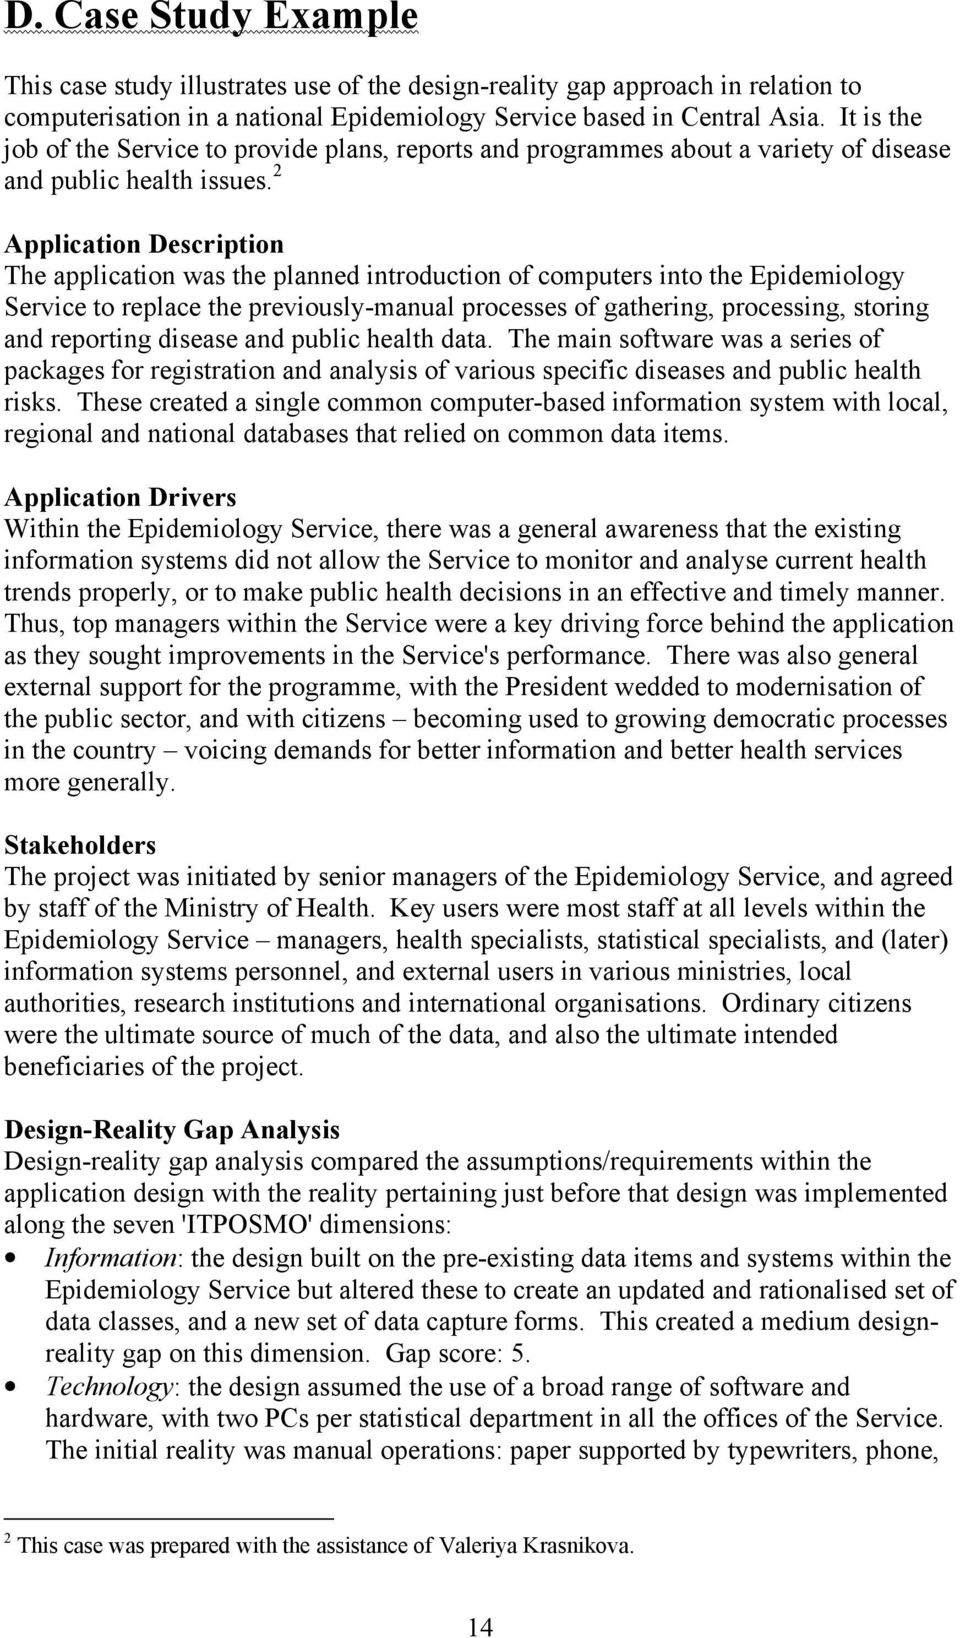 2 Application Description The application was the planned introduction of computers into the Epidemiology Service to replace the previously-manual processes of gathering, processing, storing and